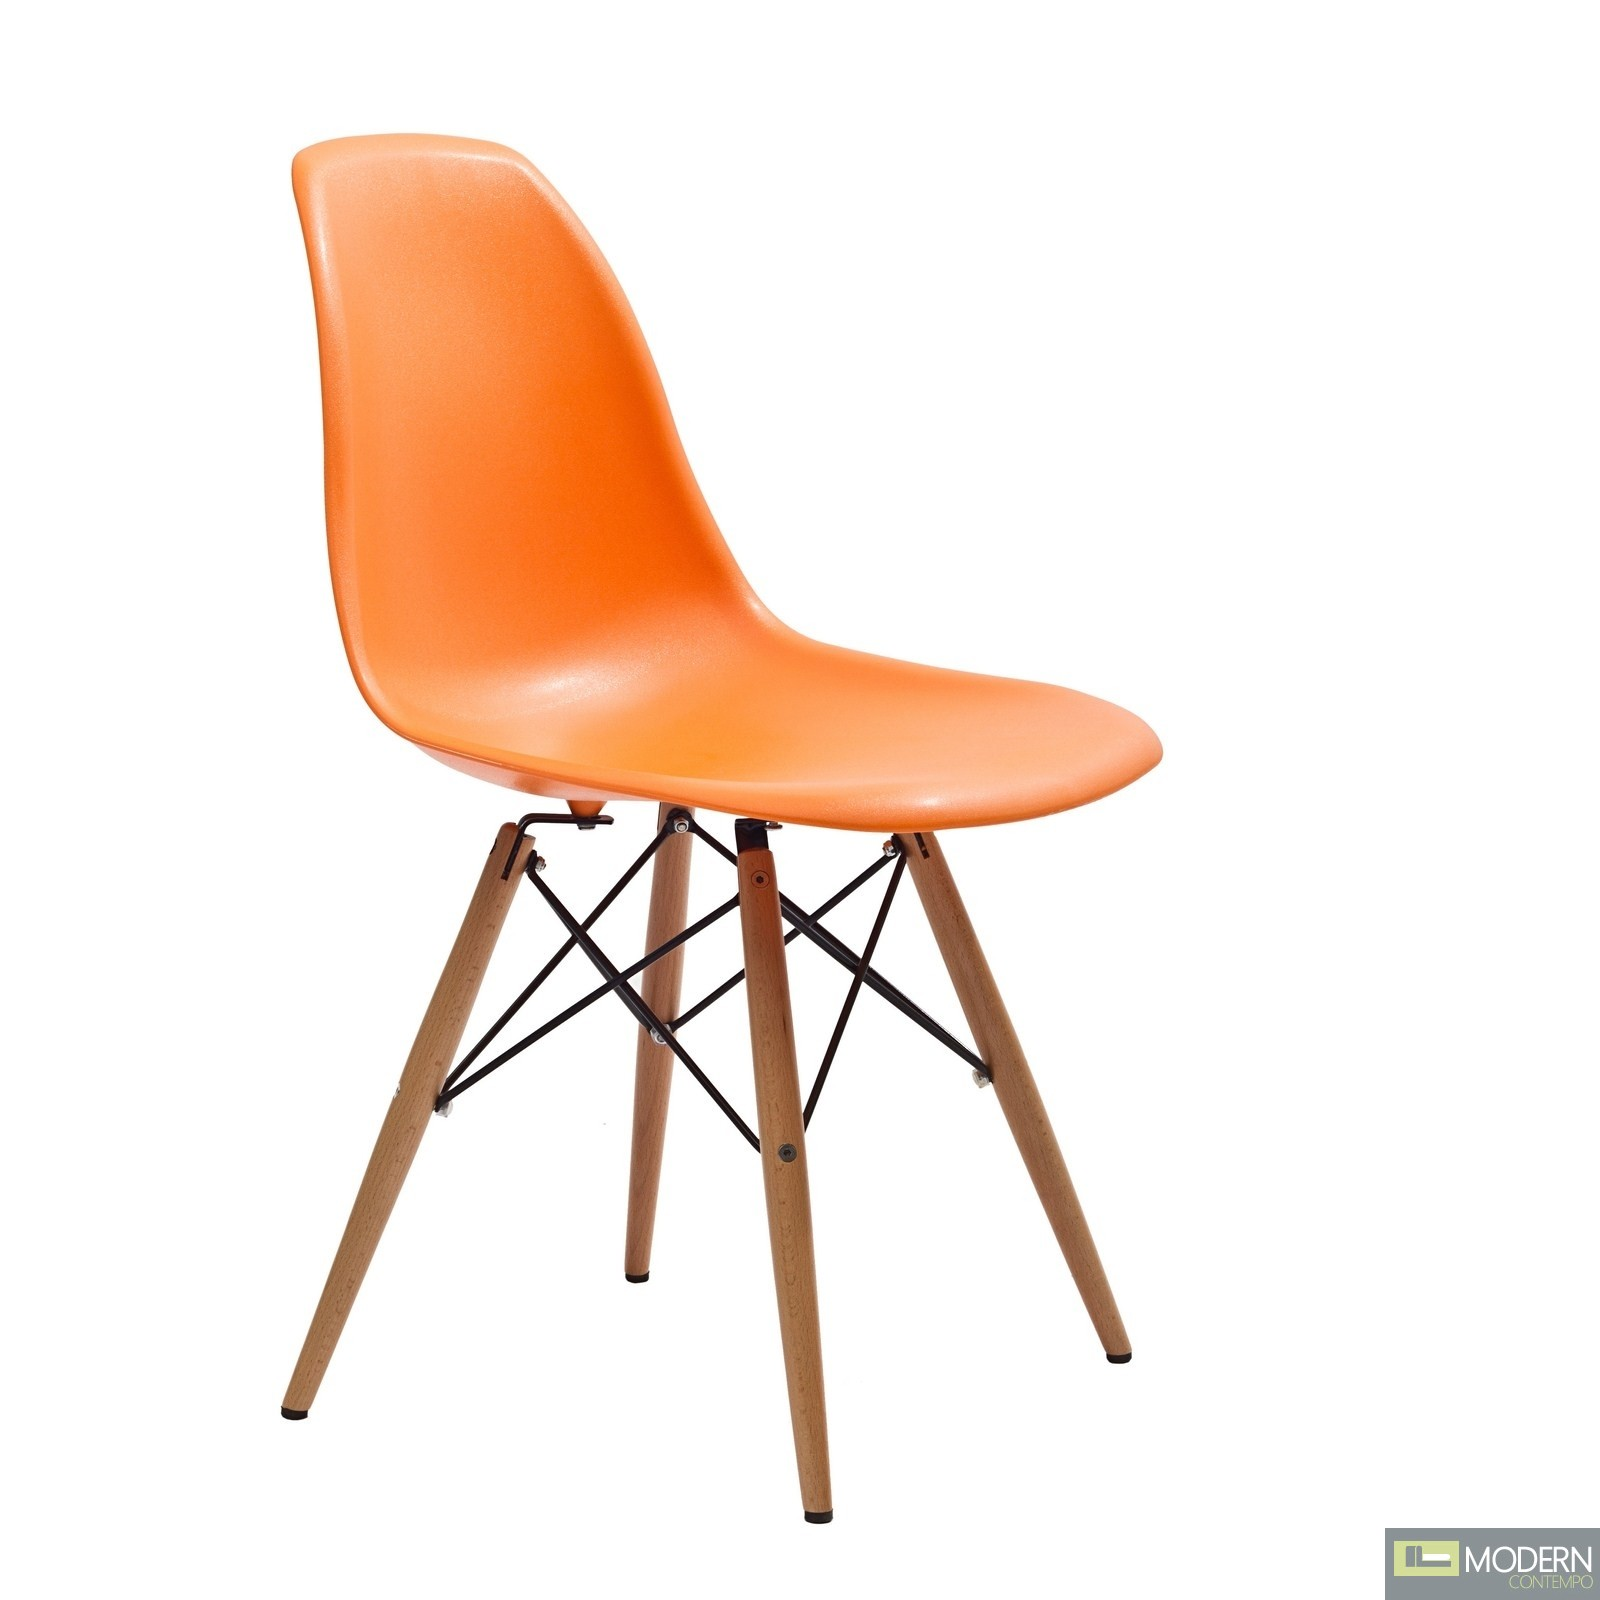 molded plastic chair with wooden dowell legs